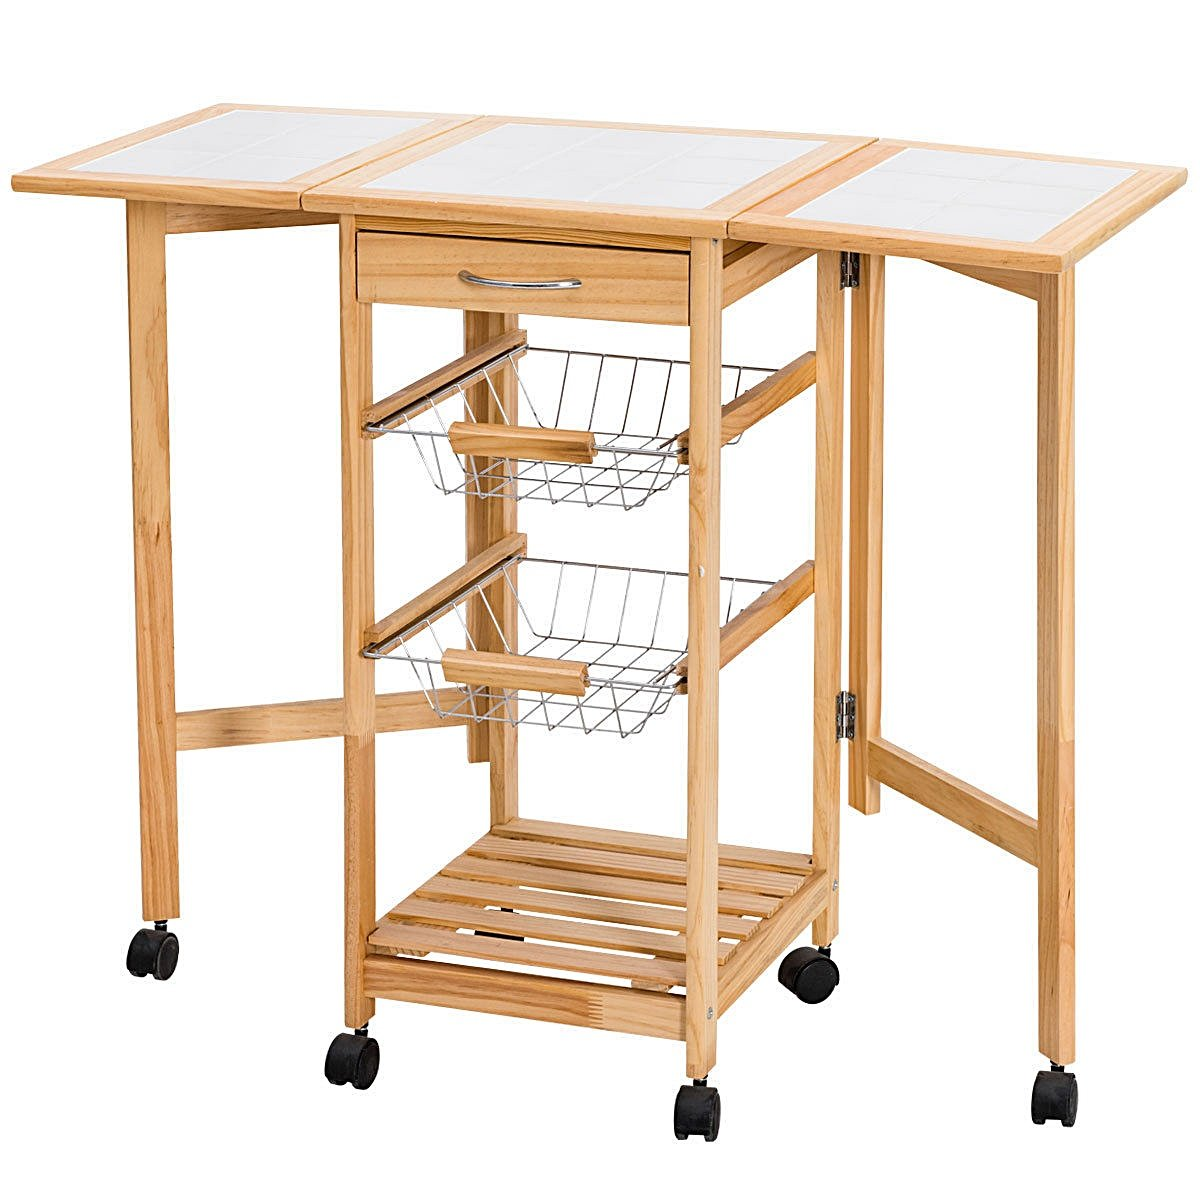 Lapha' Folding Table Portable Rolling Wood Kitchen With DrawerTrolley Island Cart Drop Leaf Desk Storage Drawers Rack Basket Party Serving Carts